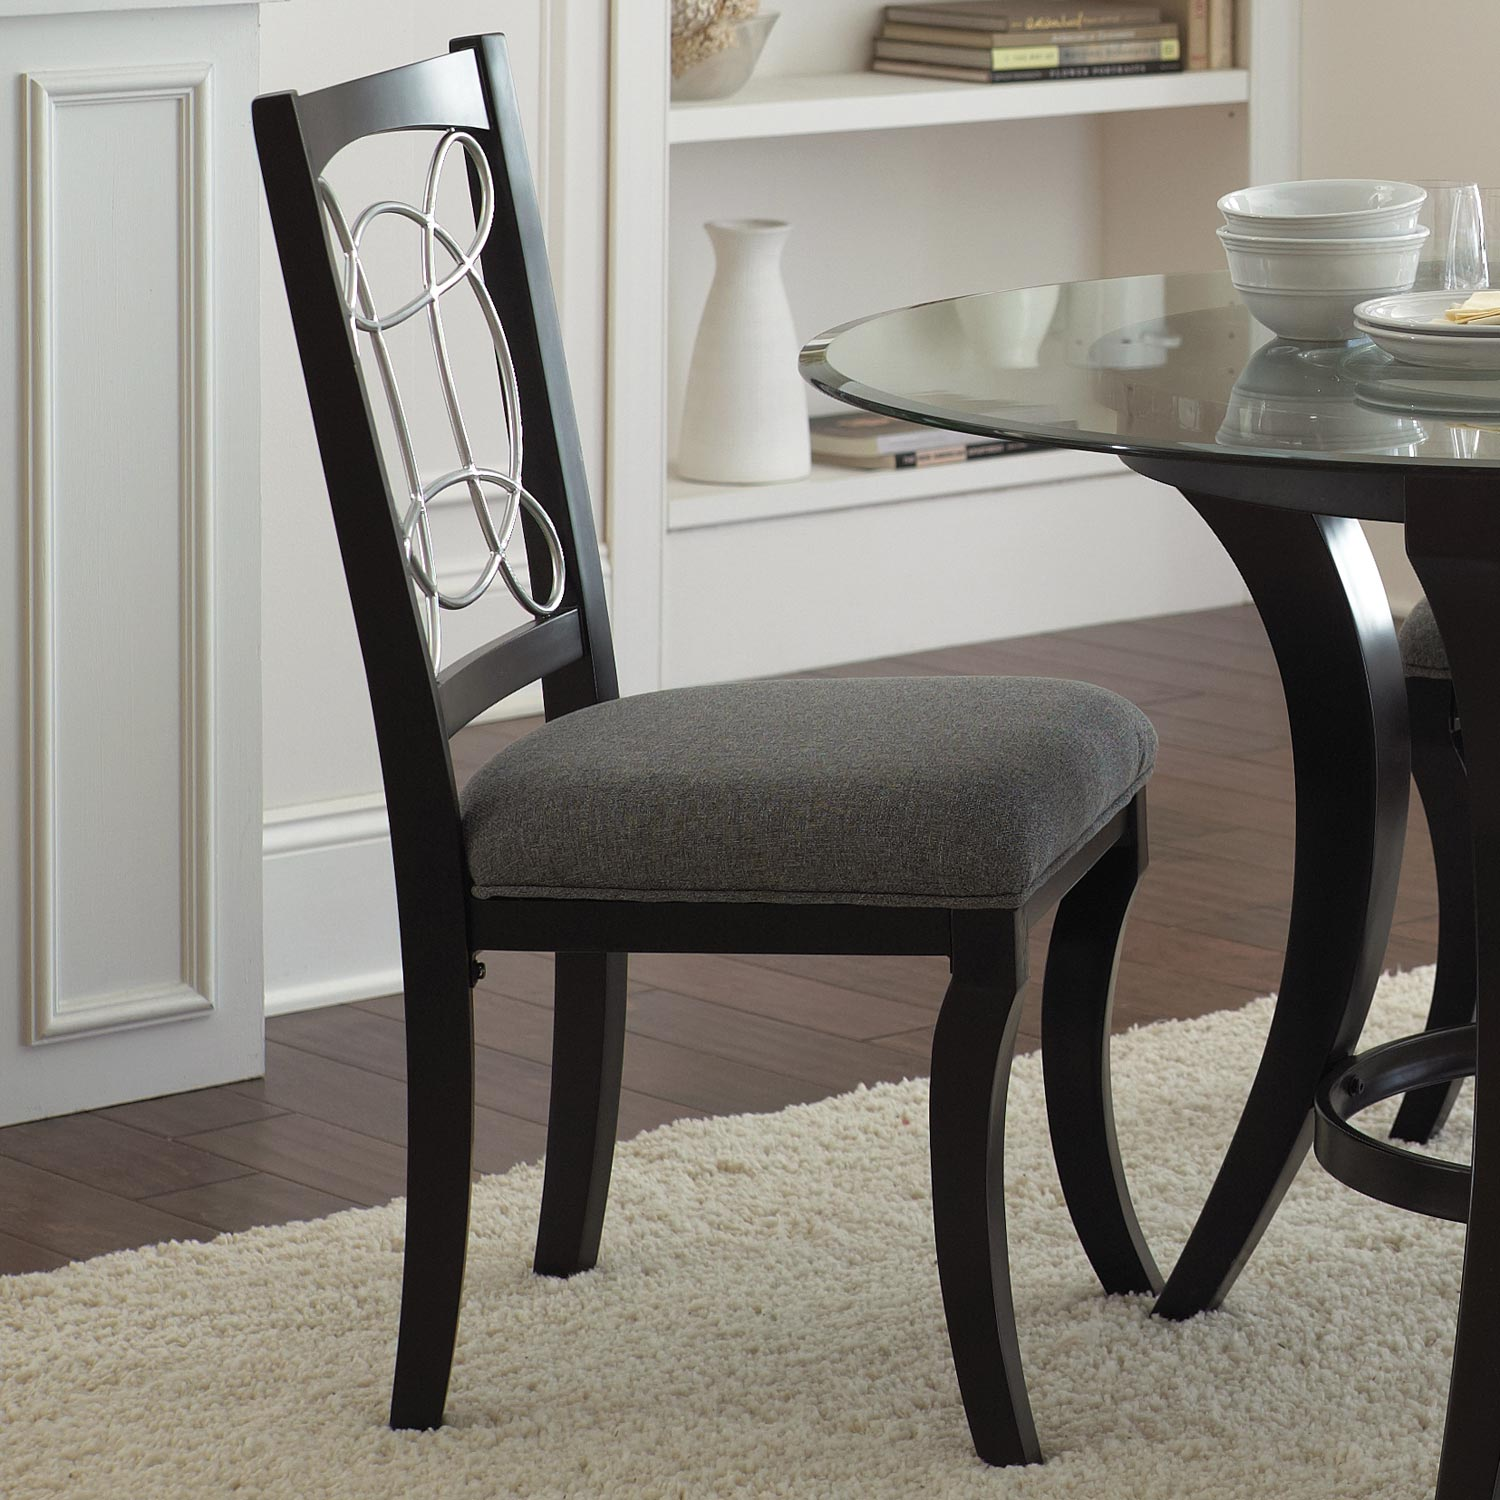 Cayman Side Chair - Black Frame, Gray Seat (Set of 2) - SSC-CY480S